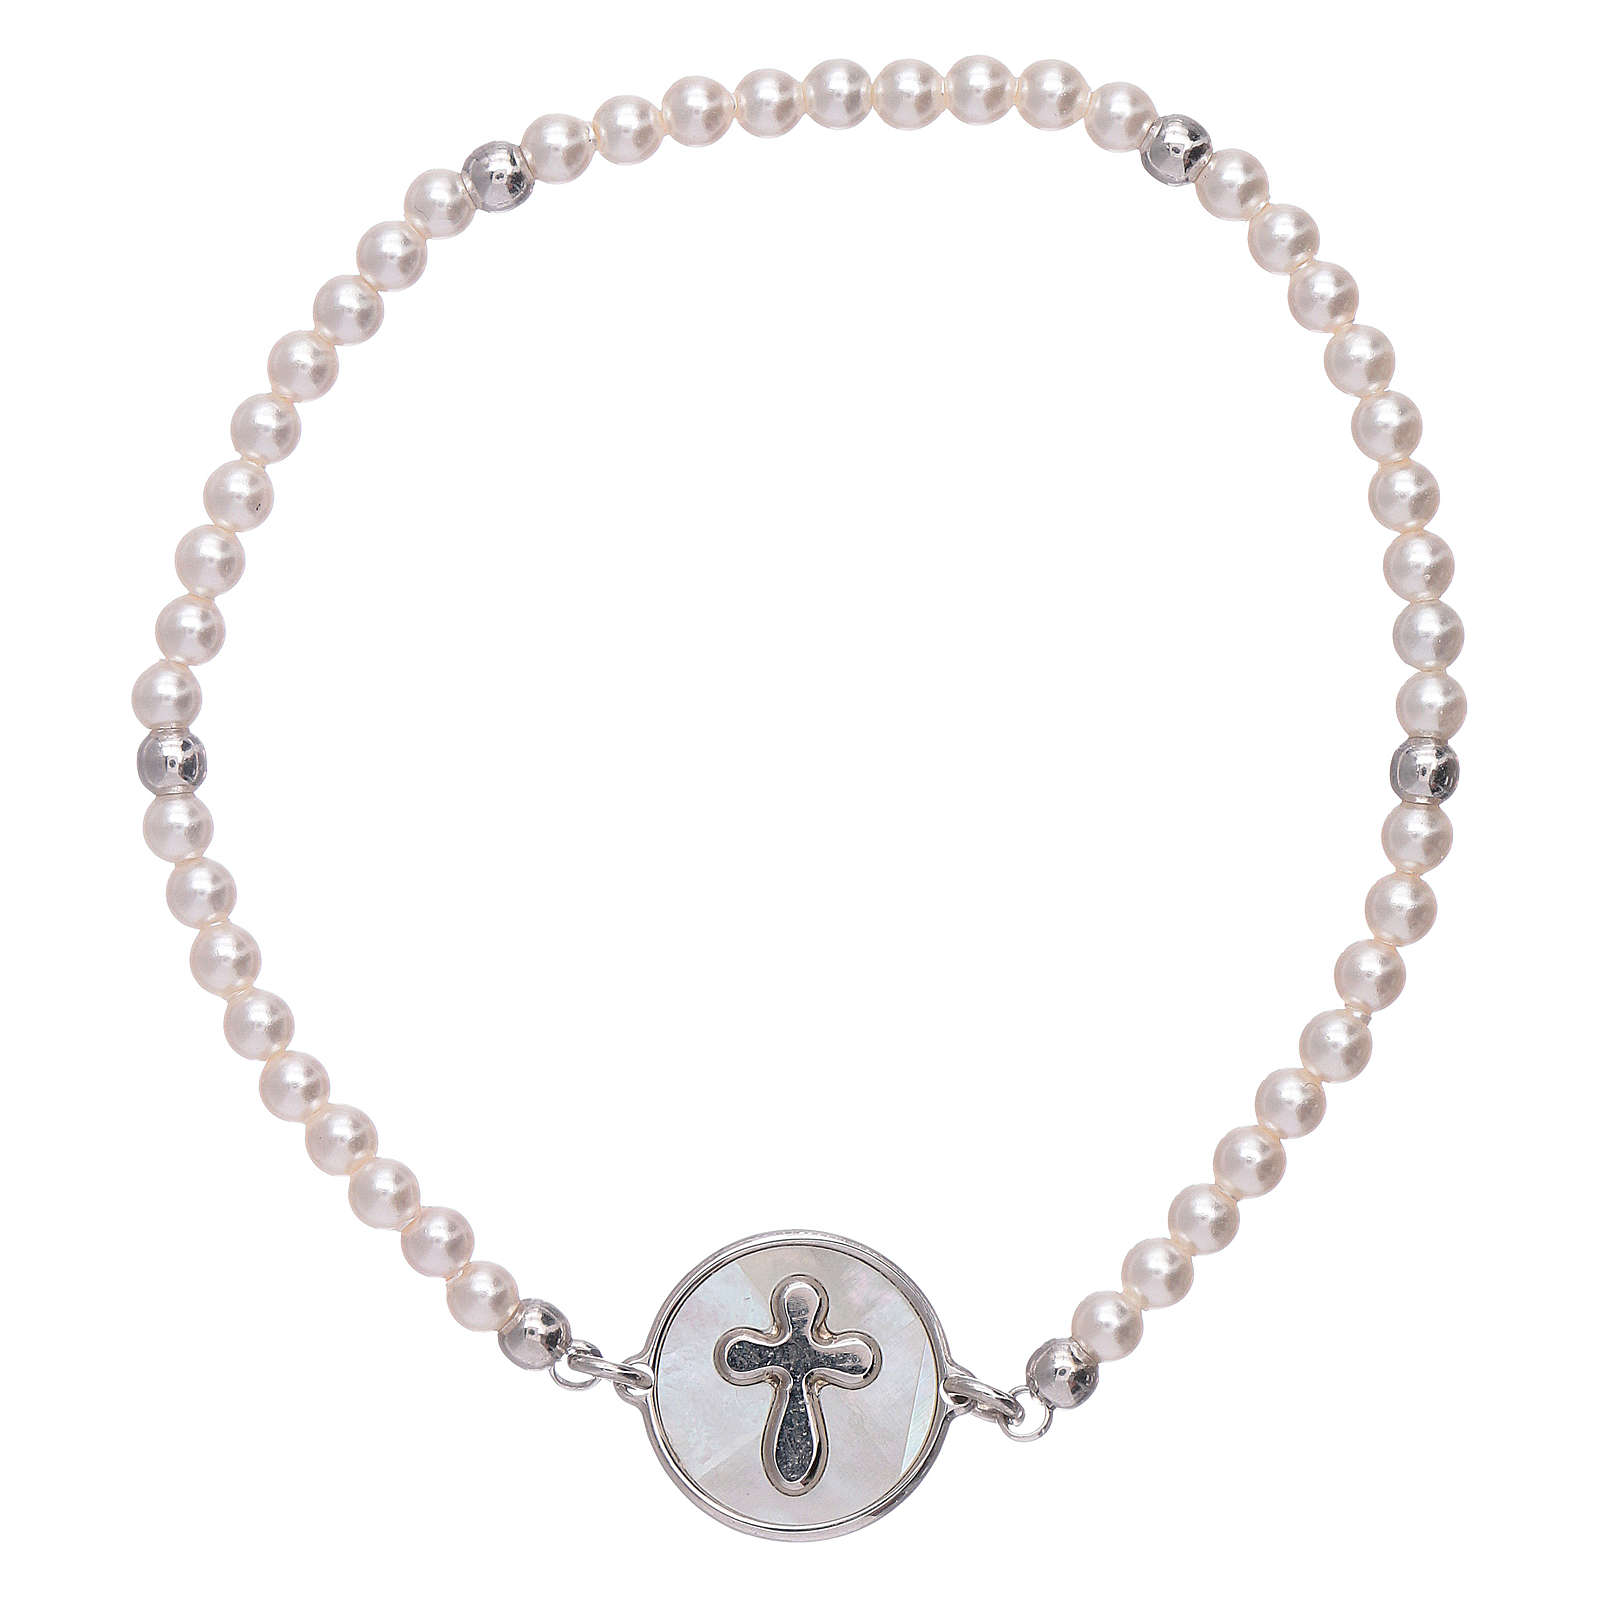 AMEN 925 sterling silver bracelet with a  mother of pearl cross medalet 4